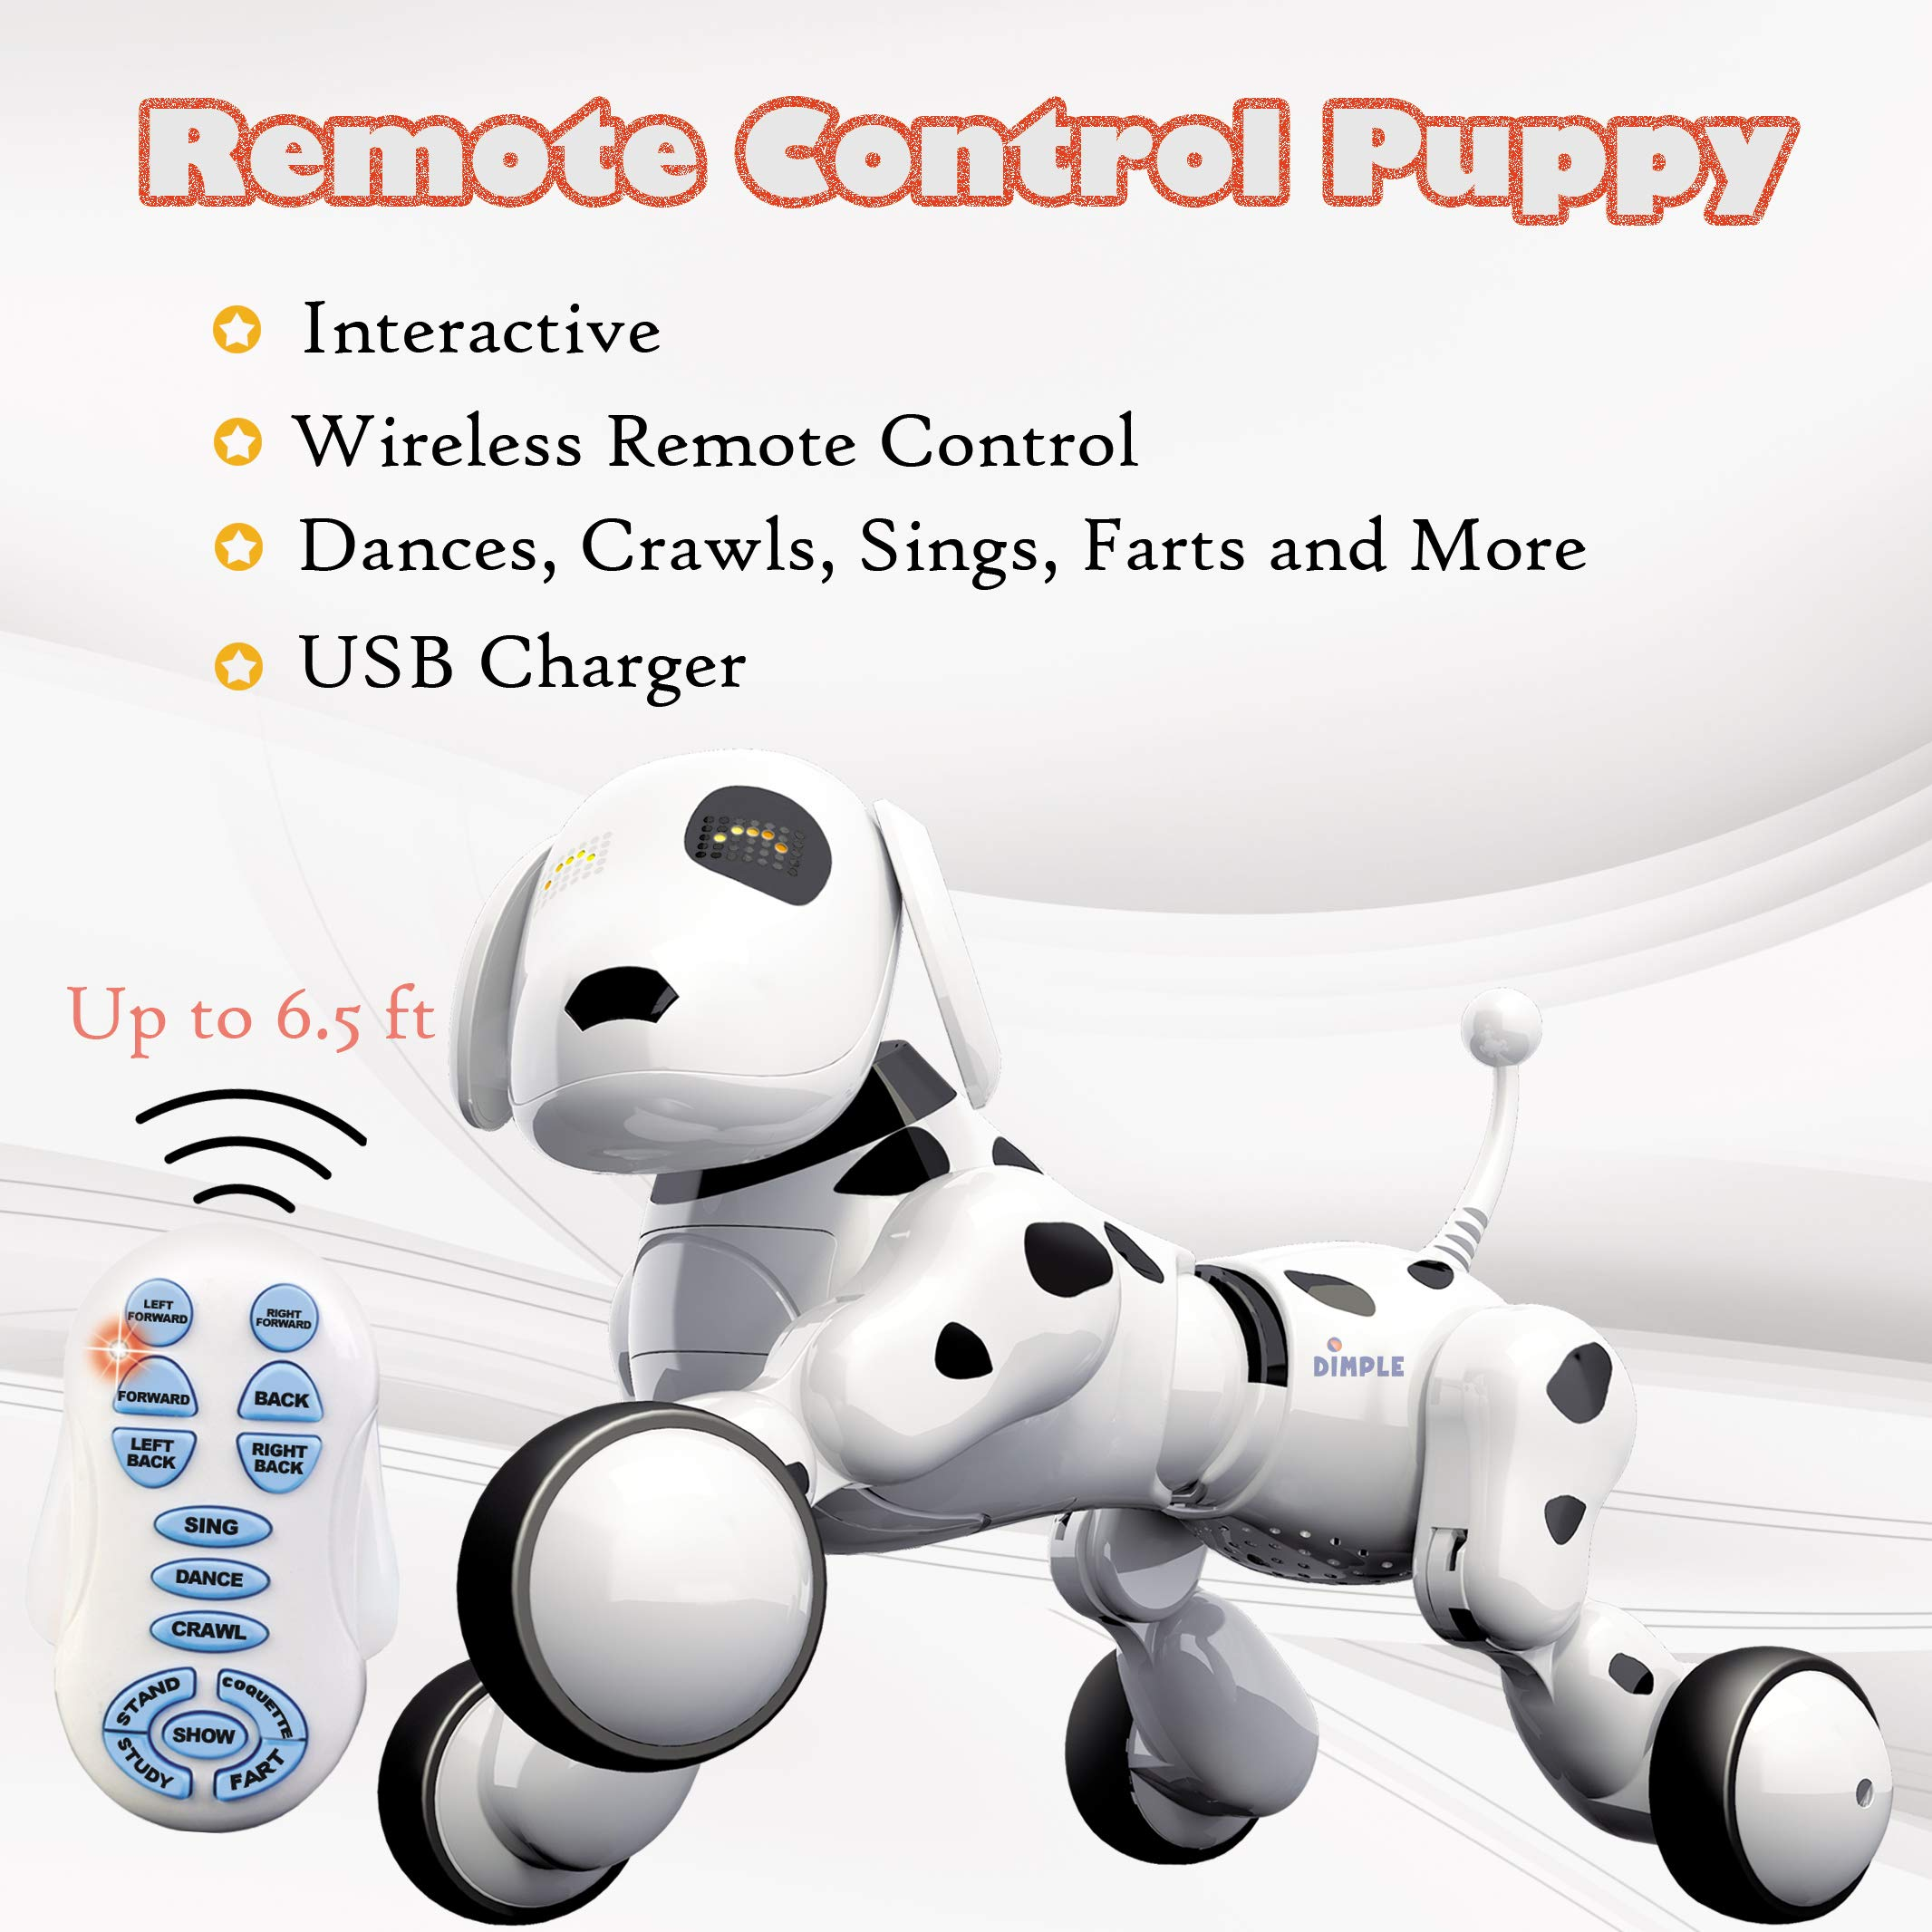 Dimple Interactive Robot Puppy With Wireless Remote Control RC Animal Dog Toy That Sings, Dances, Eye Mode, Speaks for Boys/Girls, Perfect Gift for Kids. by Dimple (Image #7)